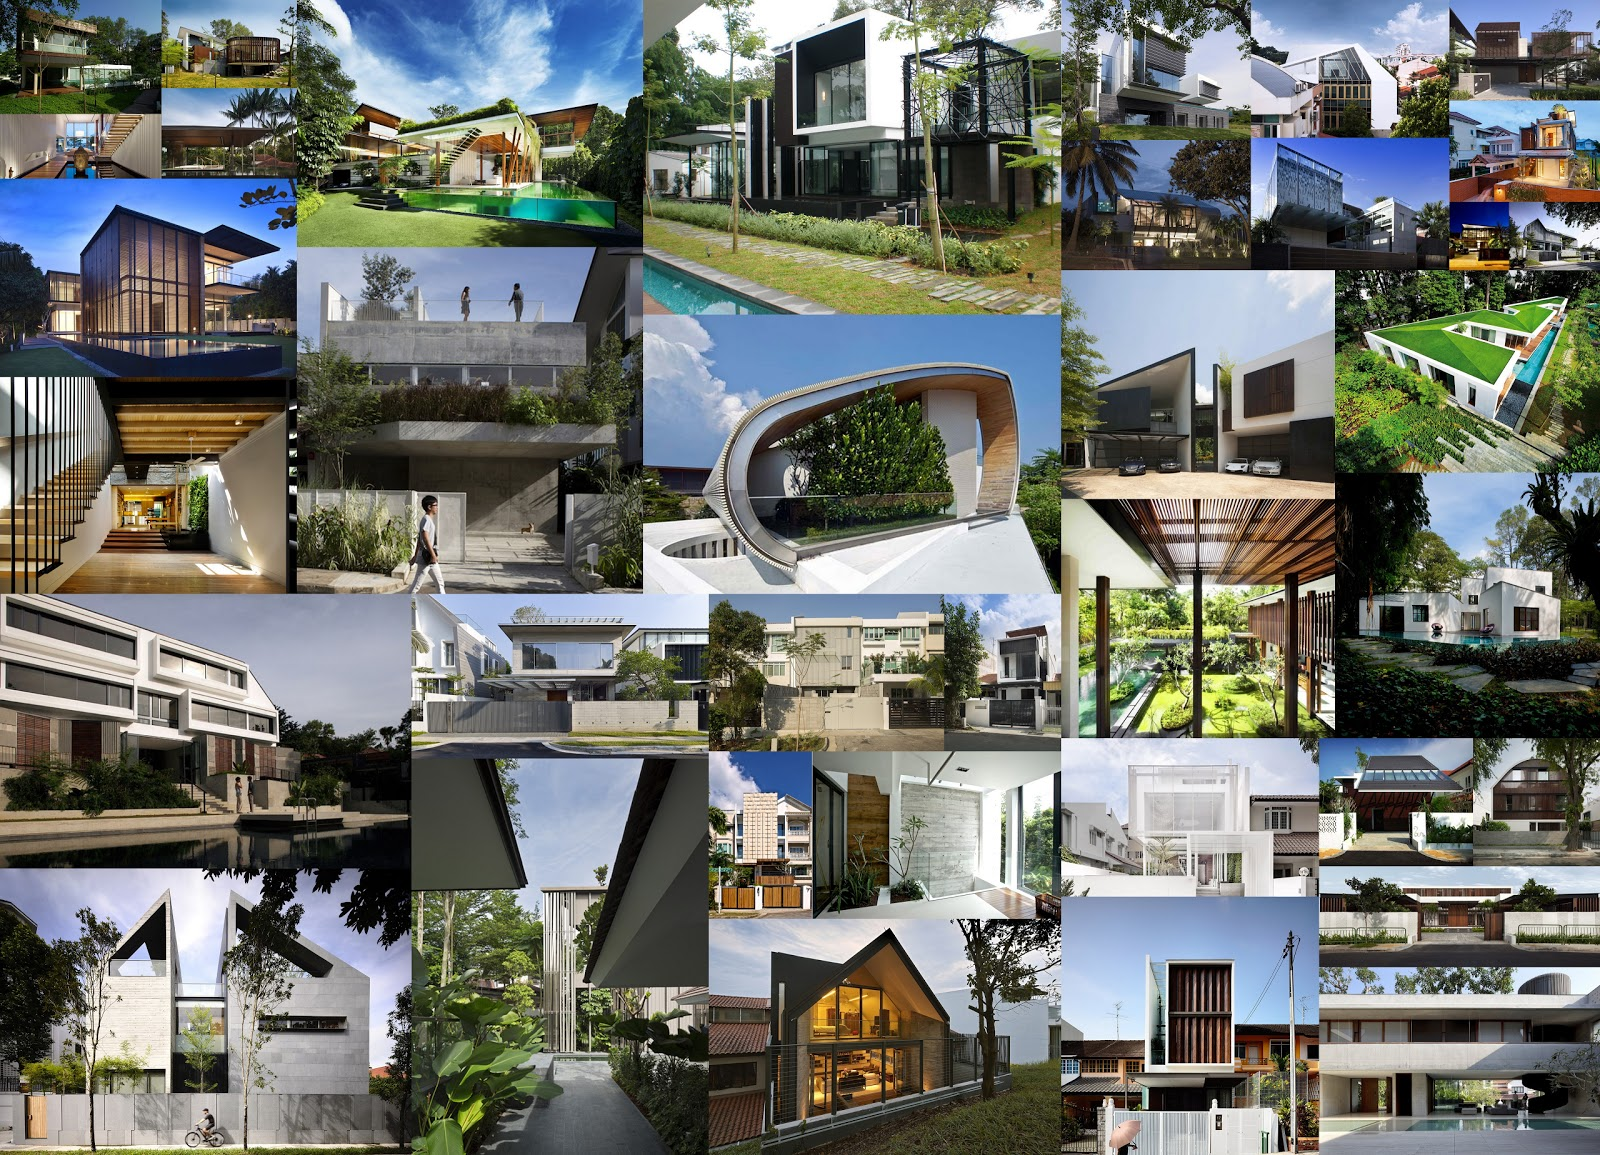 After The Popularity Of My First Post Of 50 Stunning Singapore Houses, I  Thought That SG50 Would Be A Good Time To Post Another 50 Amazing Houses In  The ...